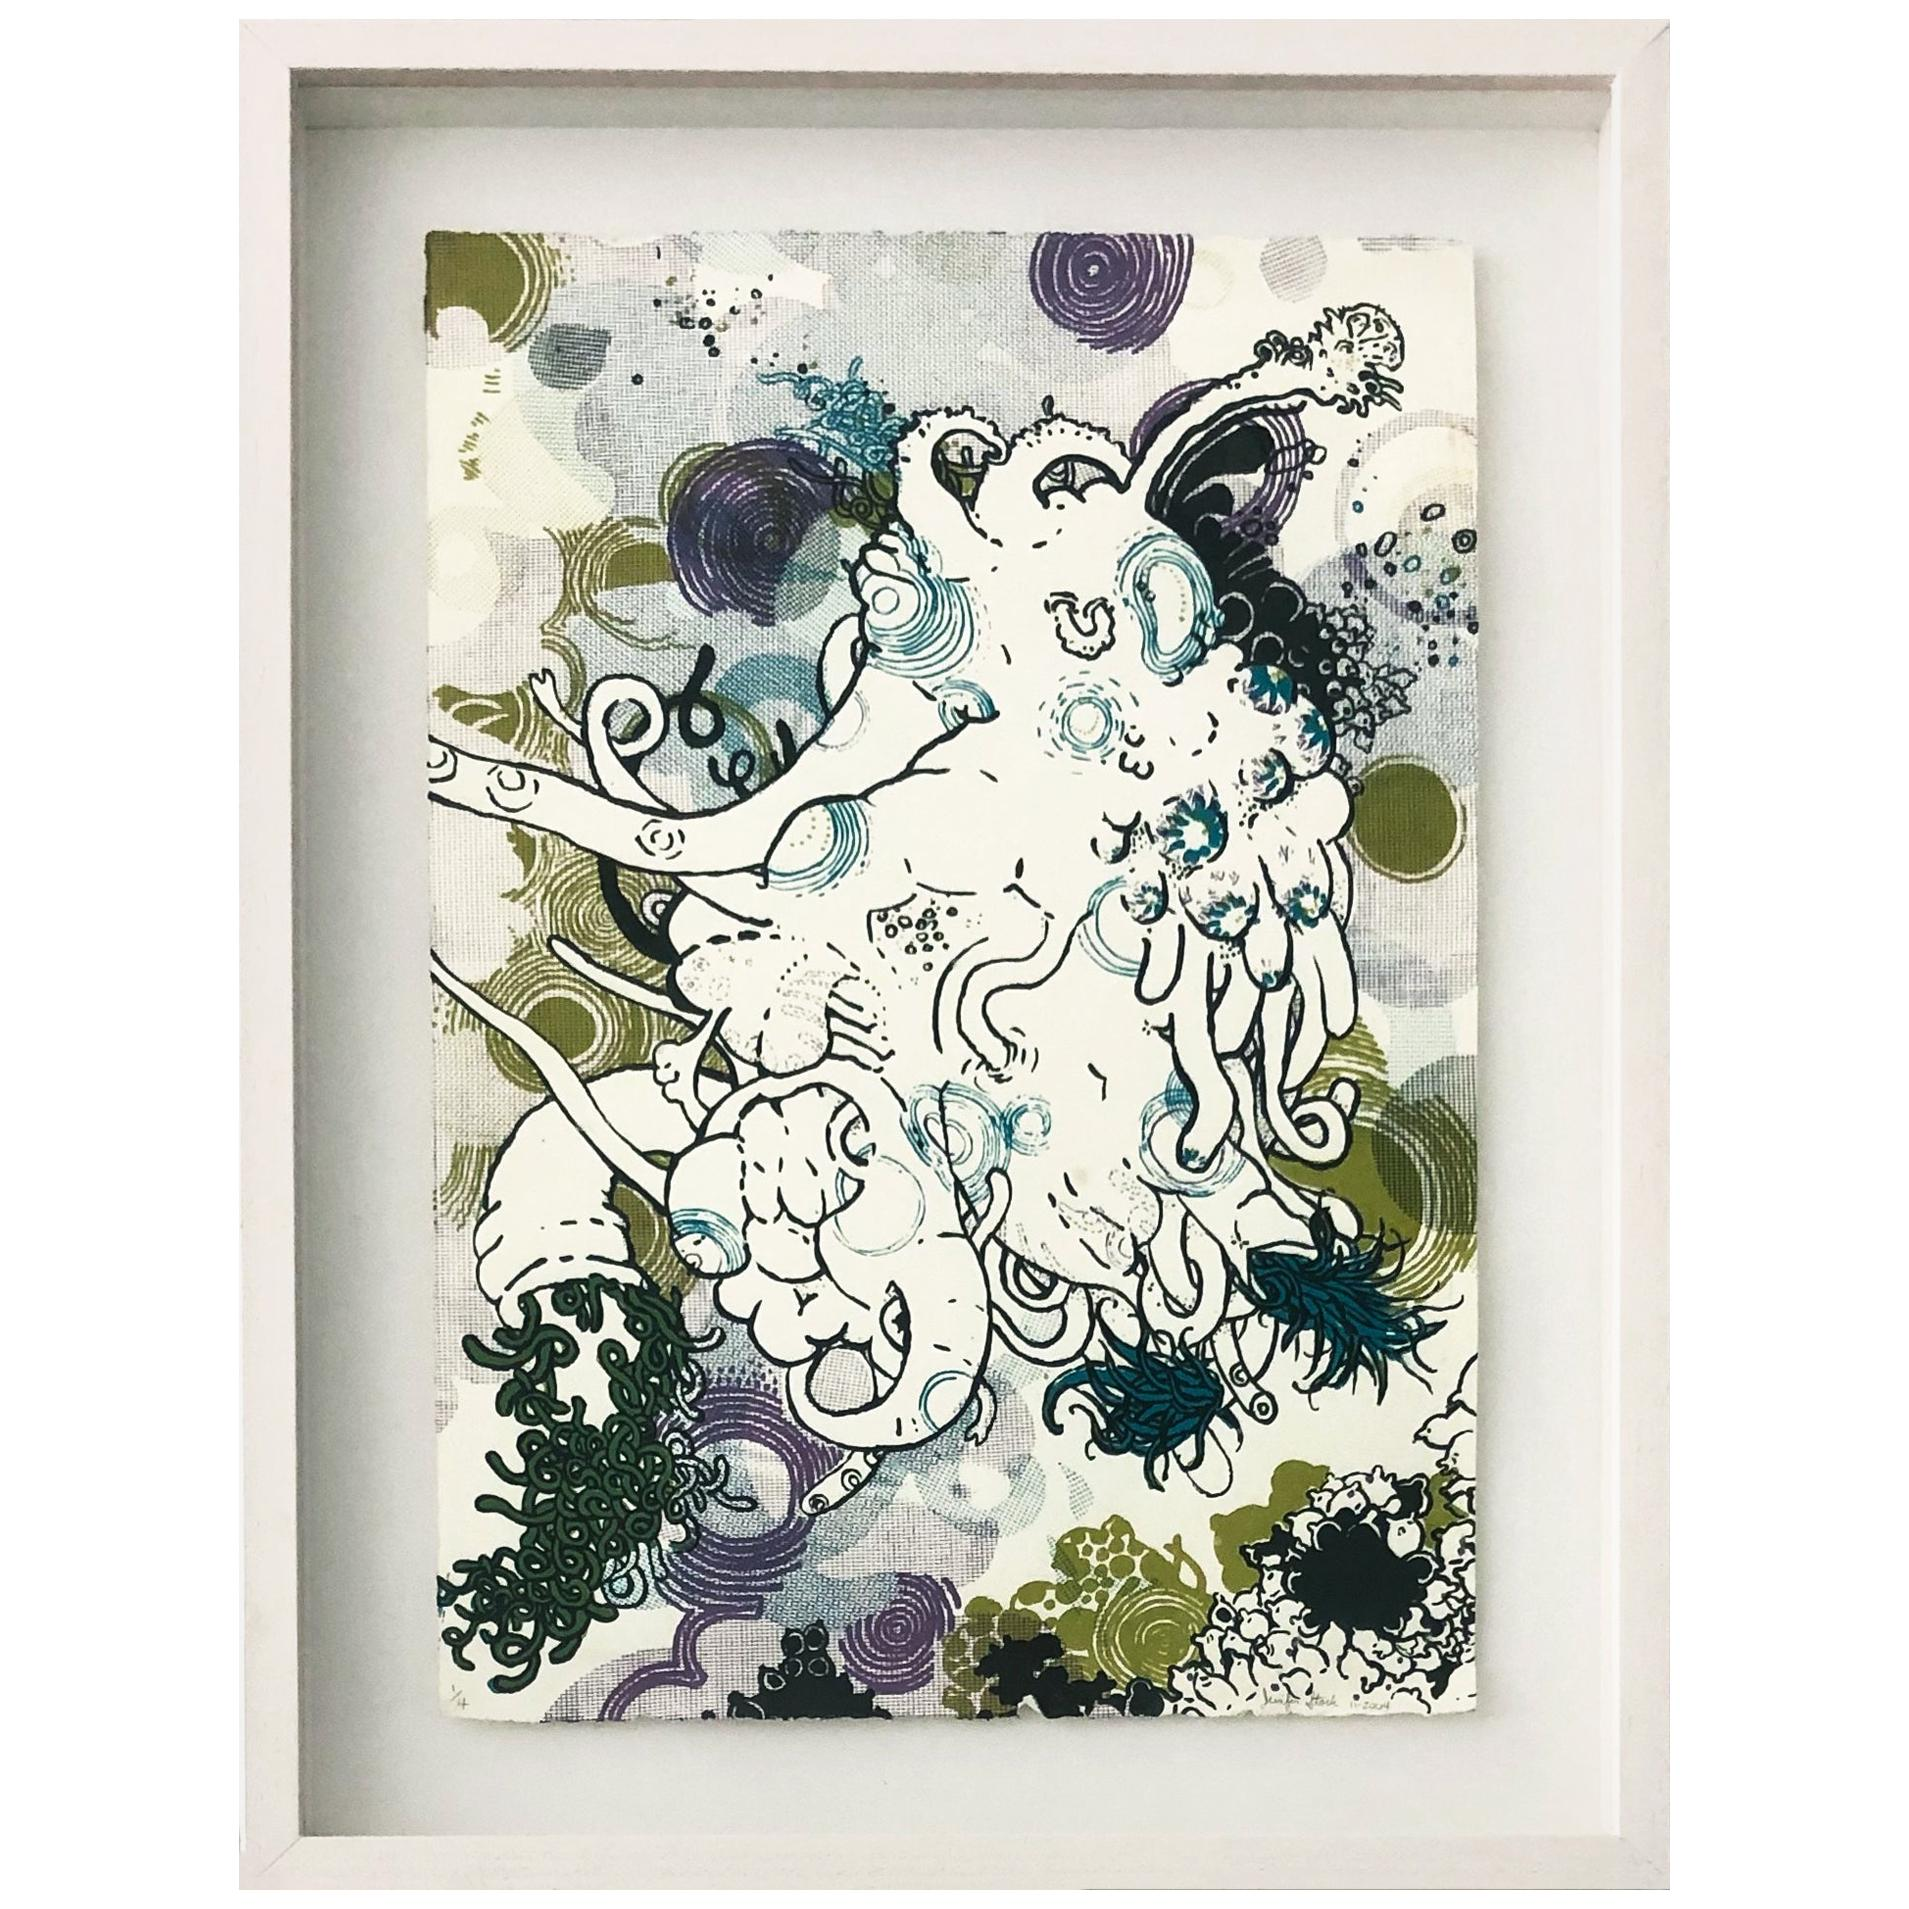 Sunflowerfast 2 , Limited Edition, Screen Print, Framed, 2004